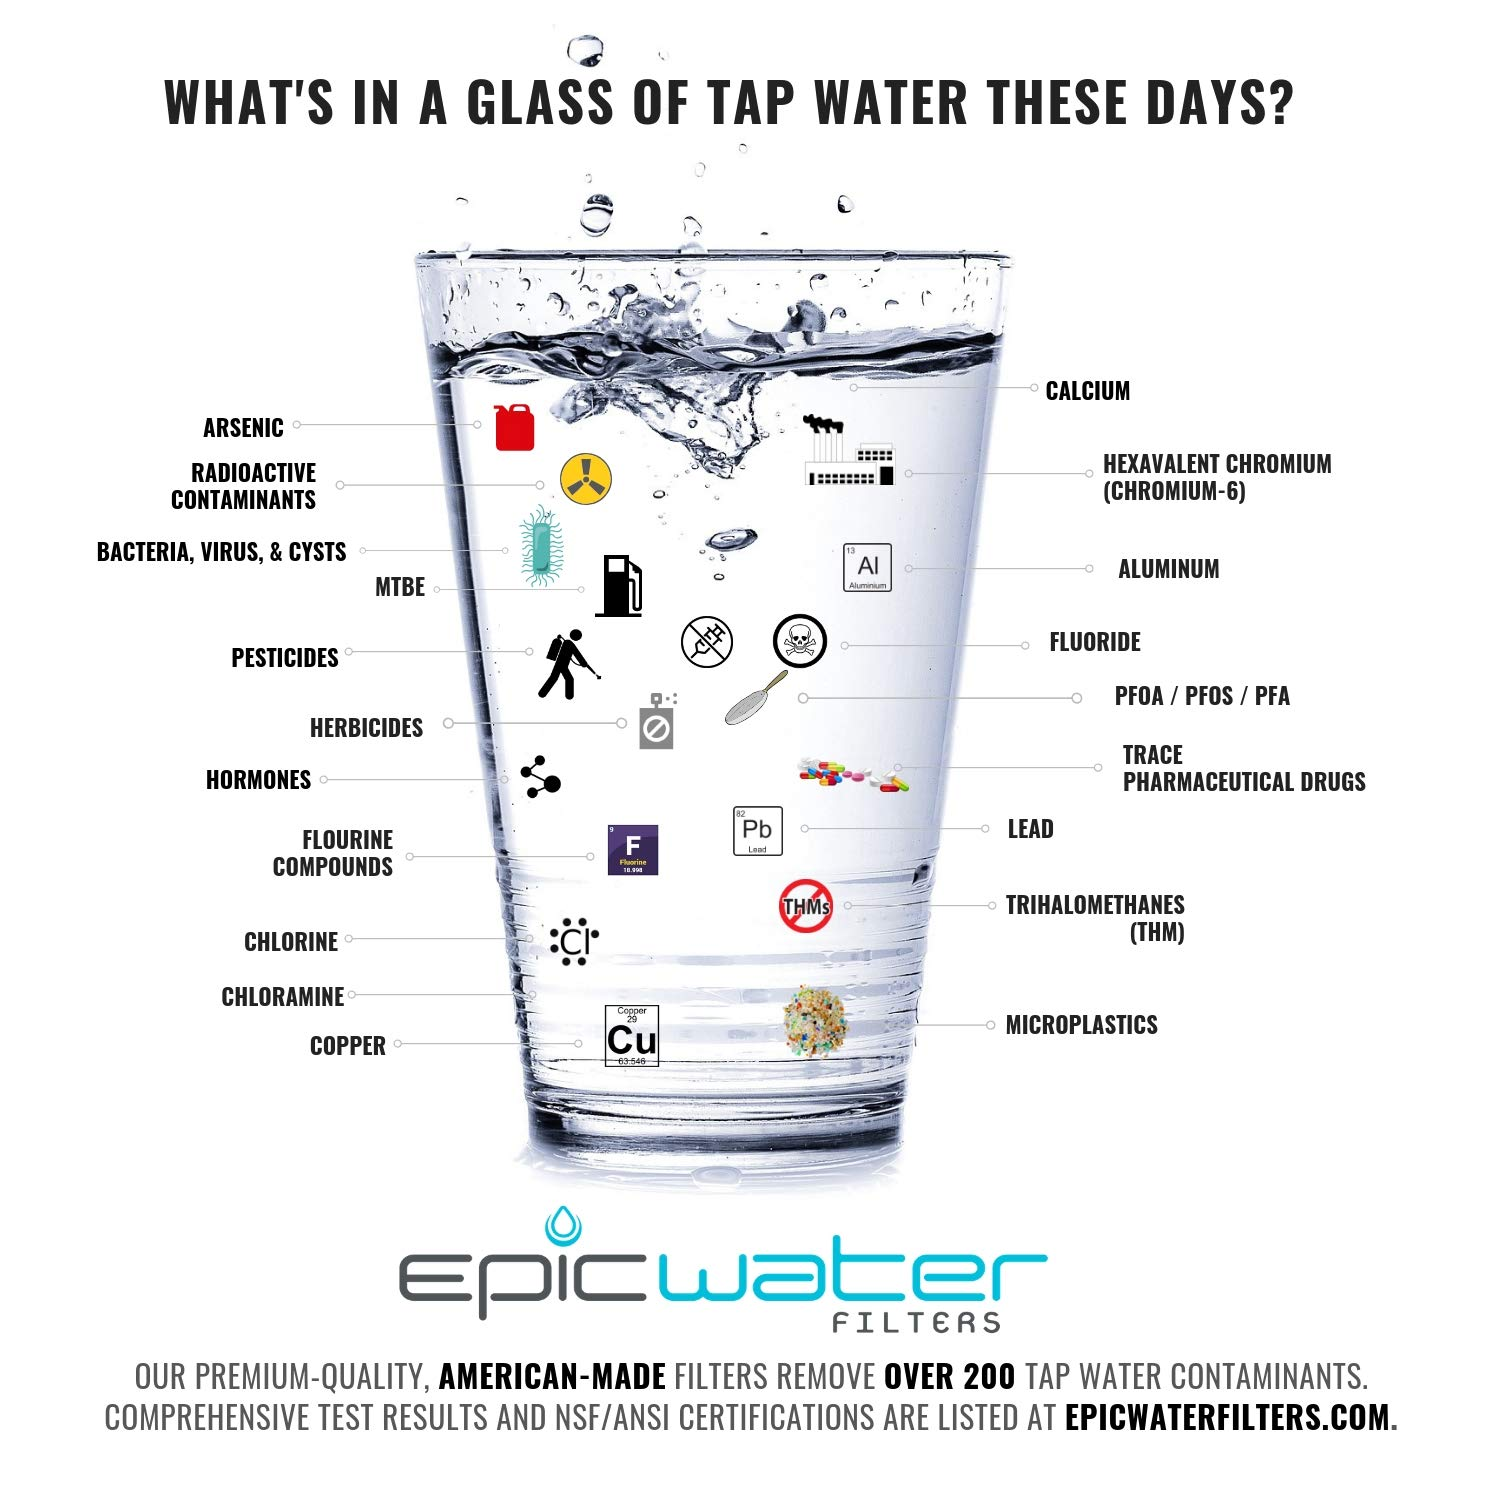 American Made Nano Filter Removes 99.9999/% of Fresh Water Contaminants Epic Water Filters The Outdoor Answer Filter Straw Lid Combo Fits Nalgene 32 oz Wide Mouth Bottles Nalgene Compatible Water Filter System